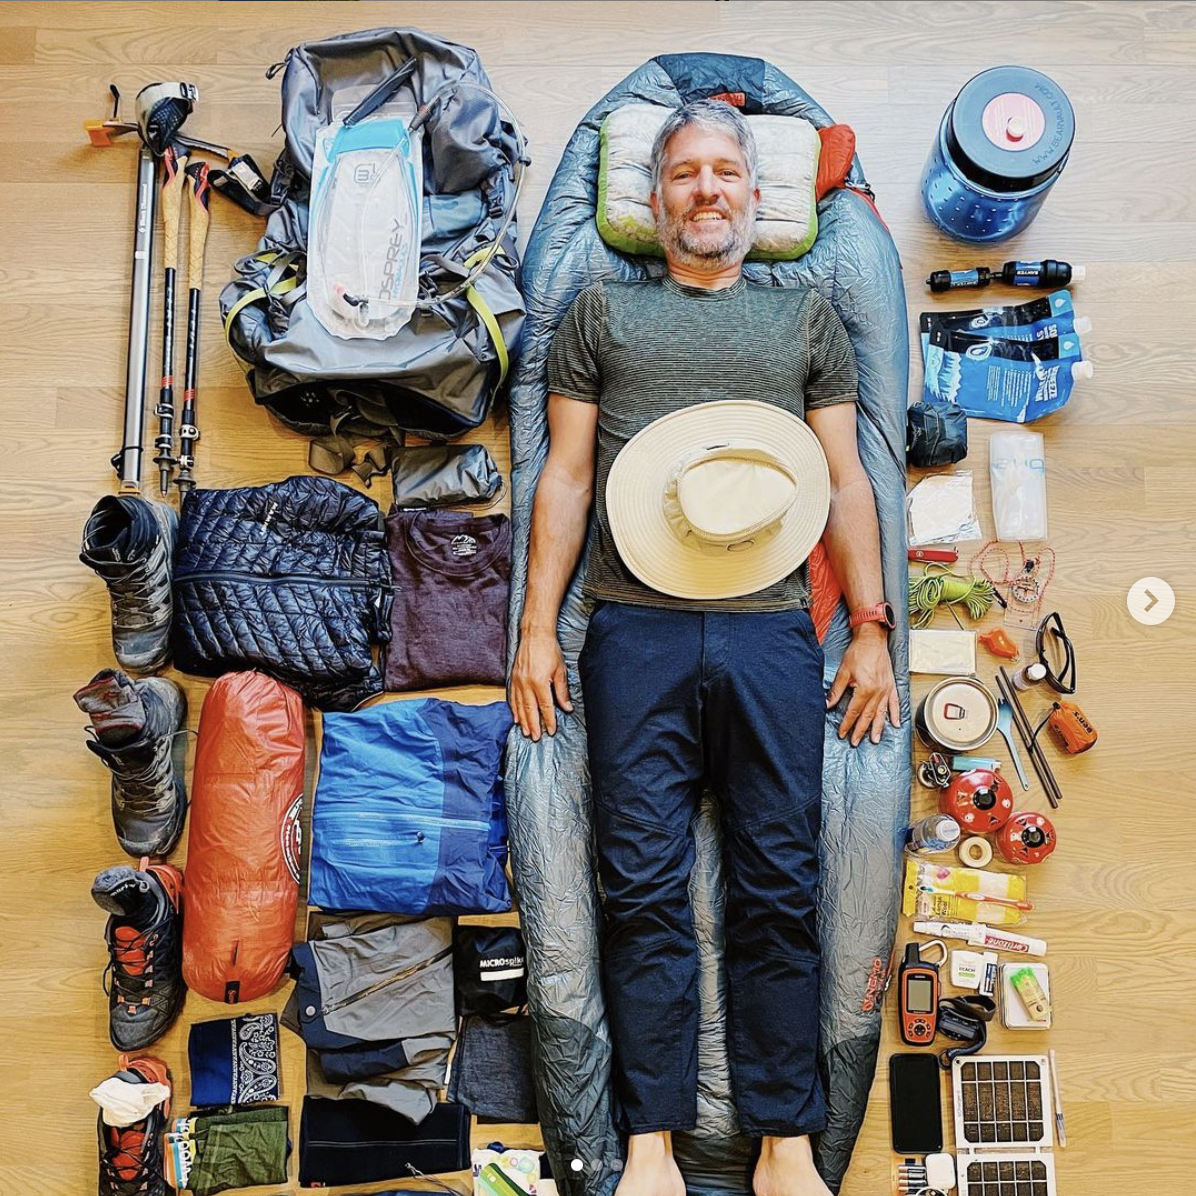 Tom and all his gear!